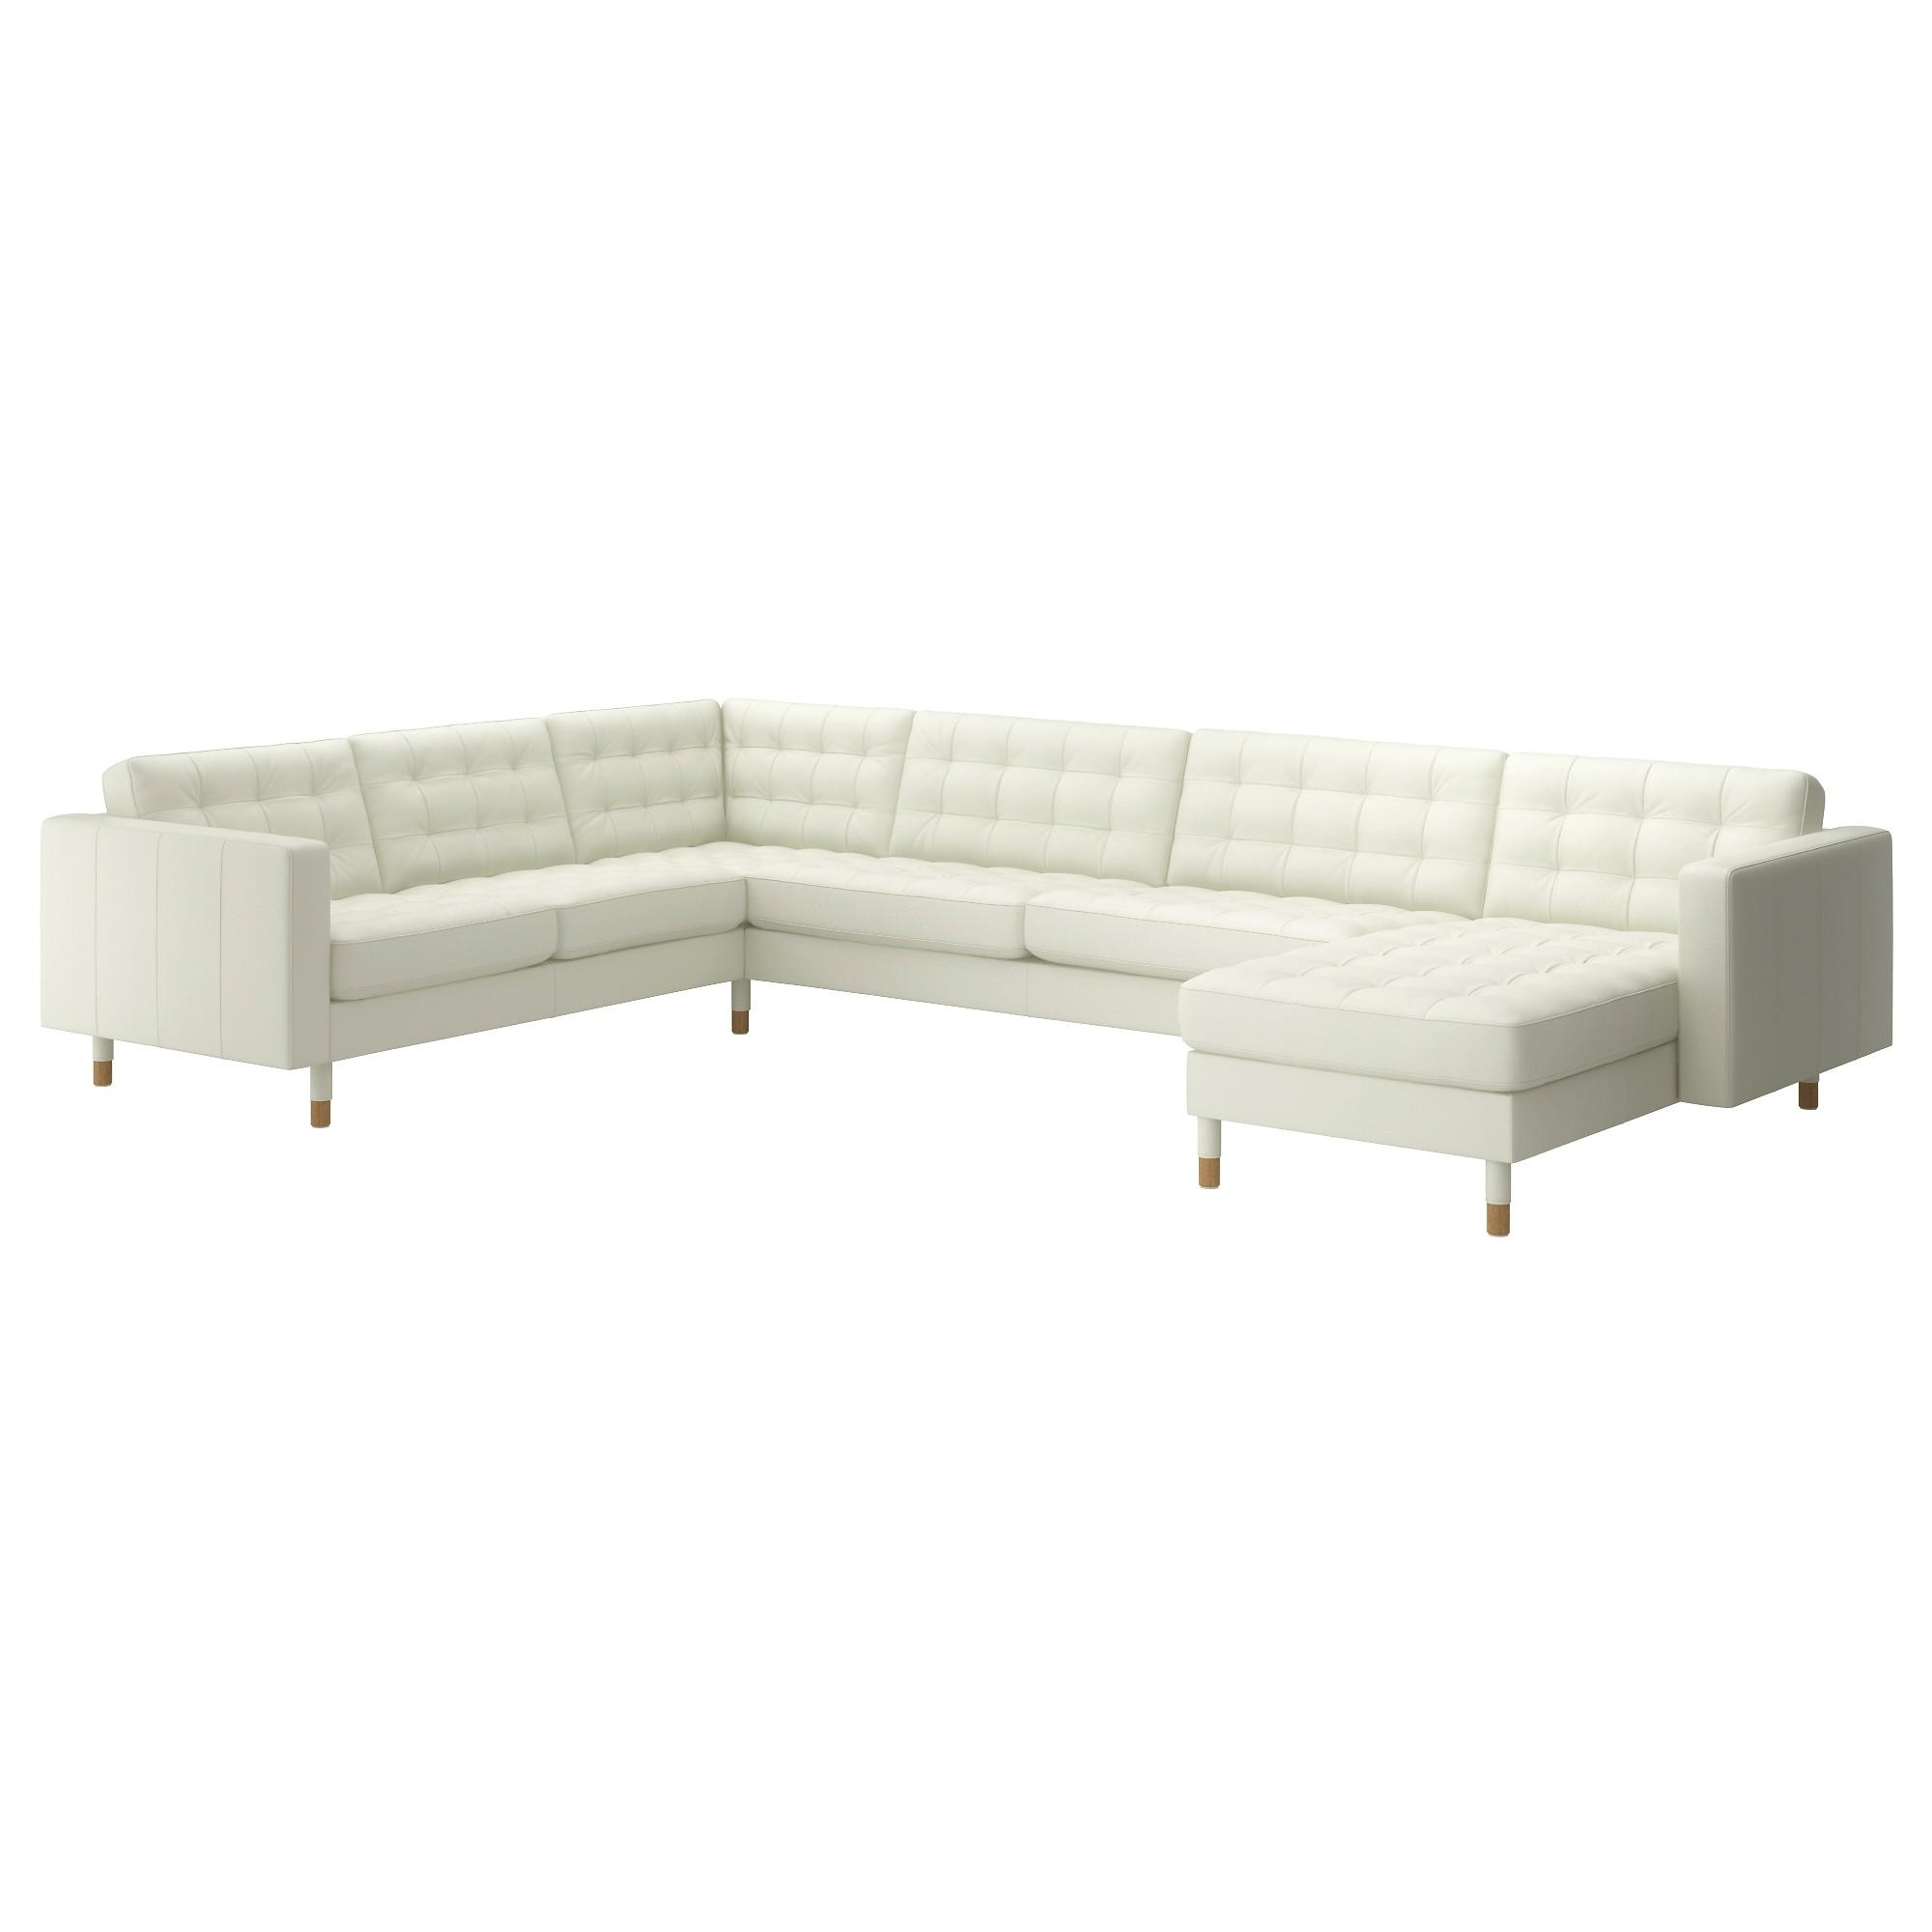 Sectional Sofas & Couches – Ikea Pertaining To Sleeper Sofa Sectional Ikea (View 19 of 20)